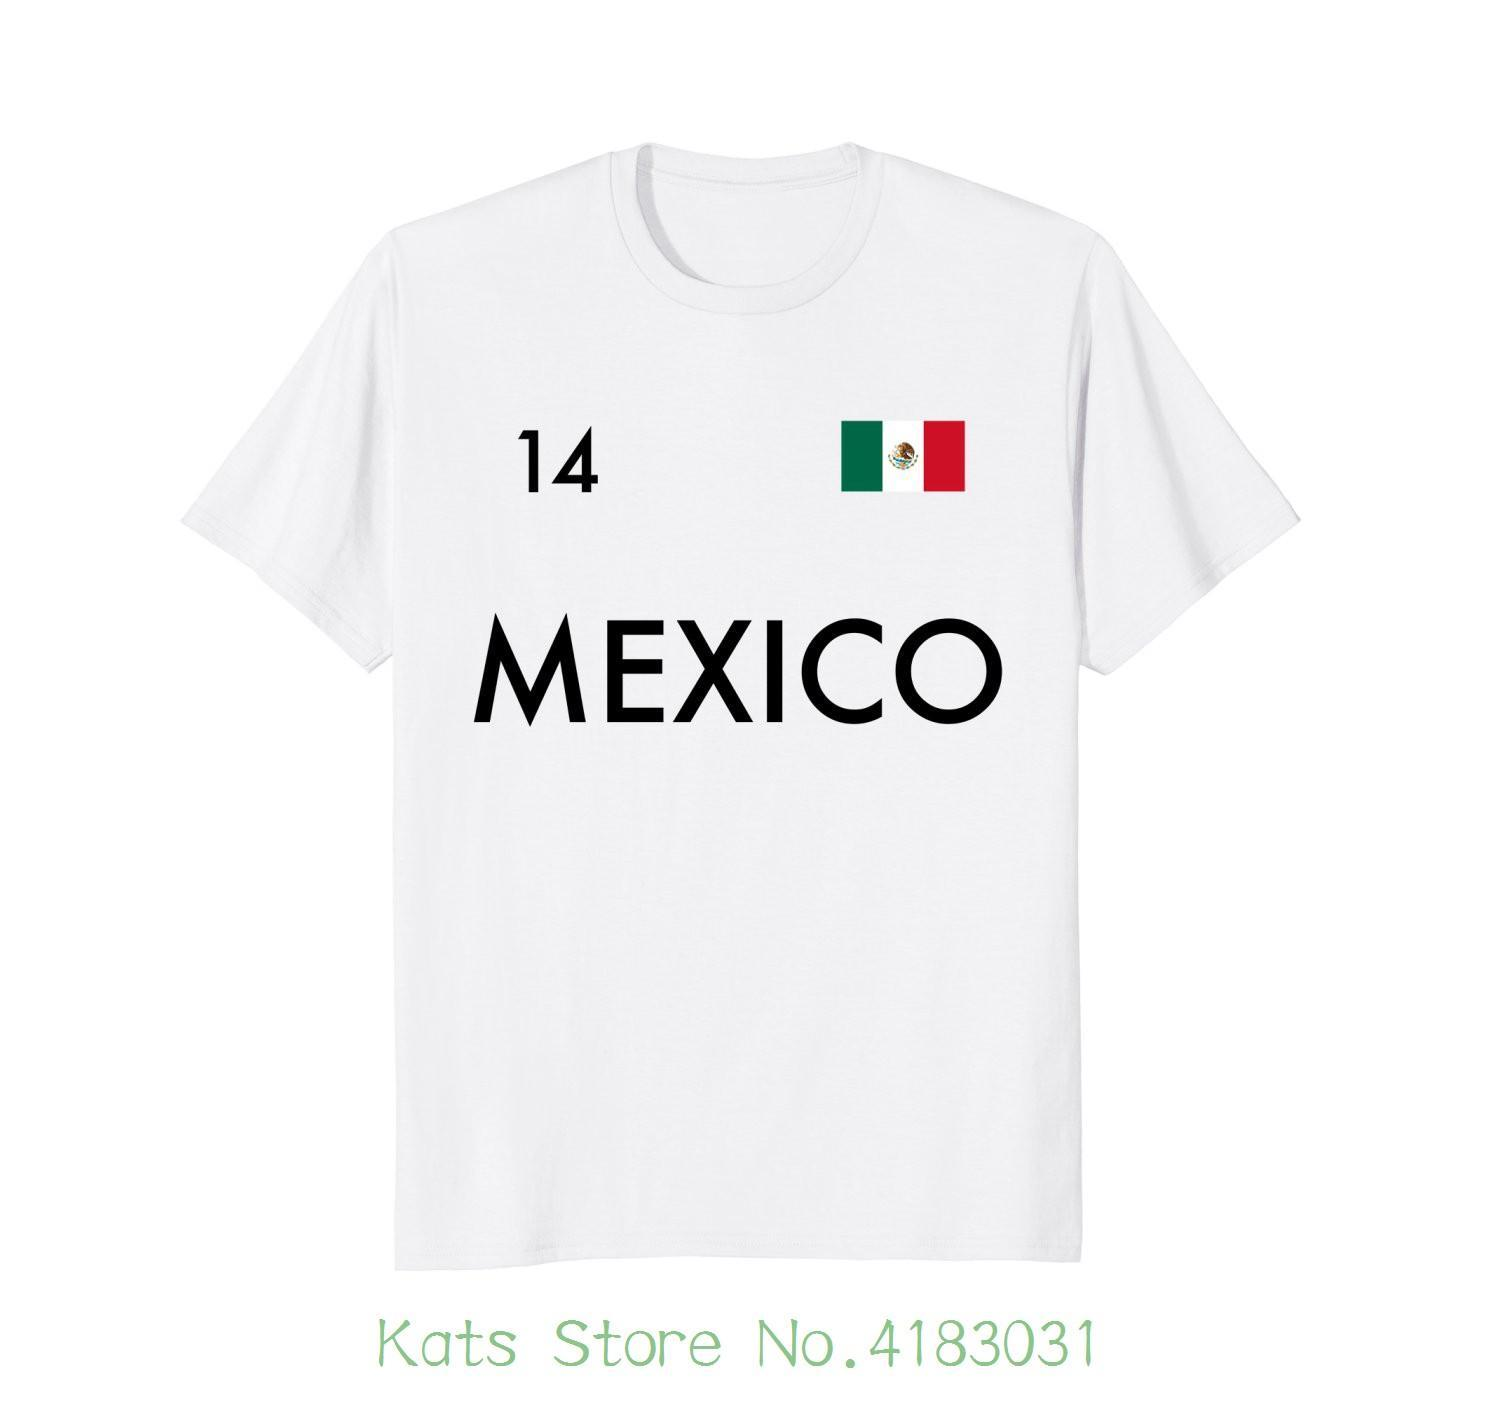 9675fceb4 Mexico Flag T Shirt Mexican Futbol Soccerite 2018 2018 New Pure Cotton  Short Sleeves Hip Hop Fashion Mens T Shirt Shop Online T Shirts T Shirt  From Jie71, ...